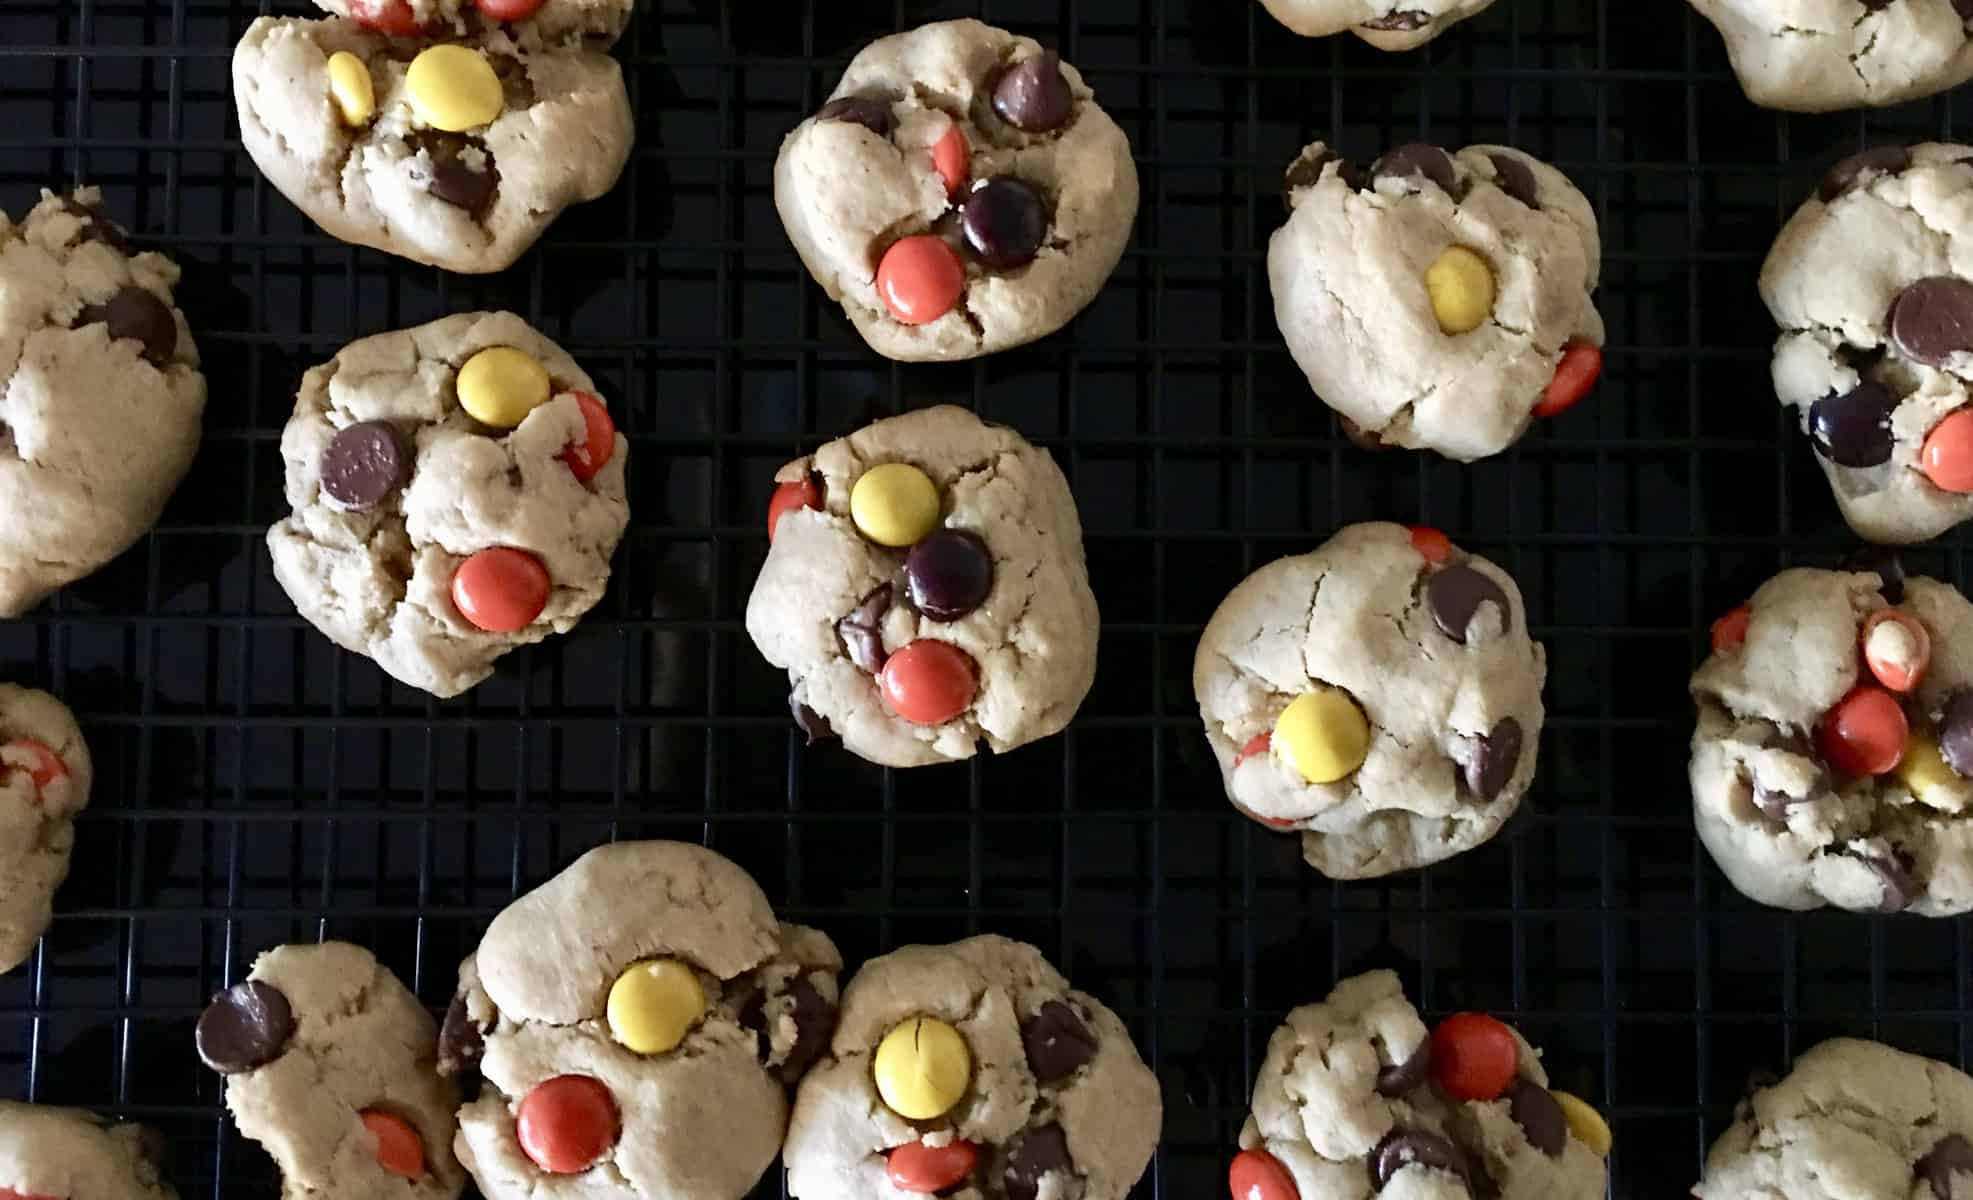 Reeses Pieces Peanut Butter Chocolate Chip Cookies on a wire cooling rack.